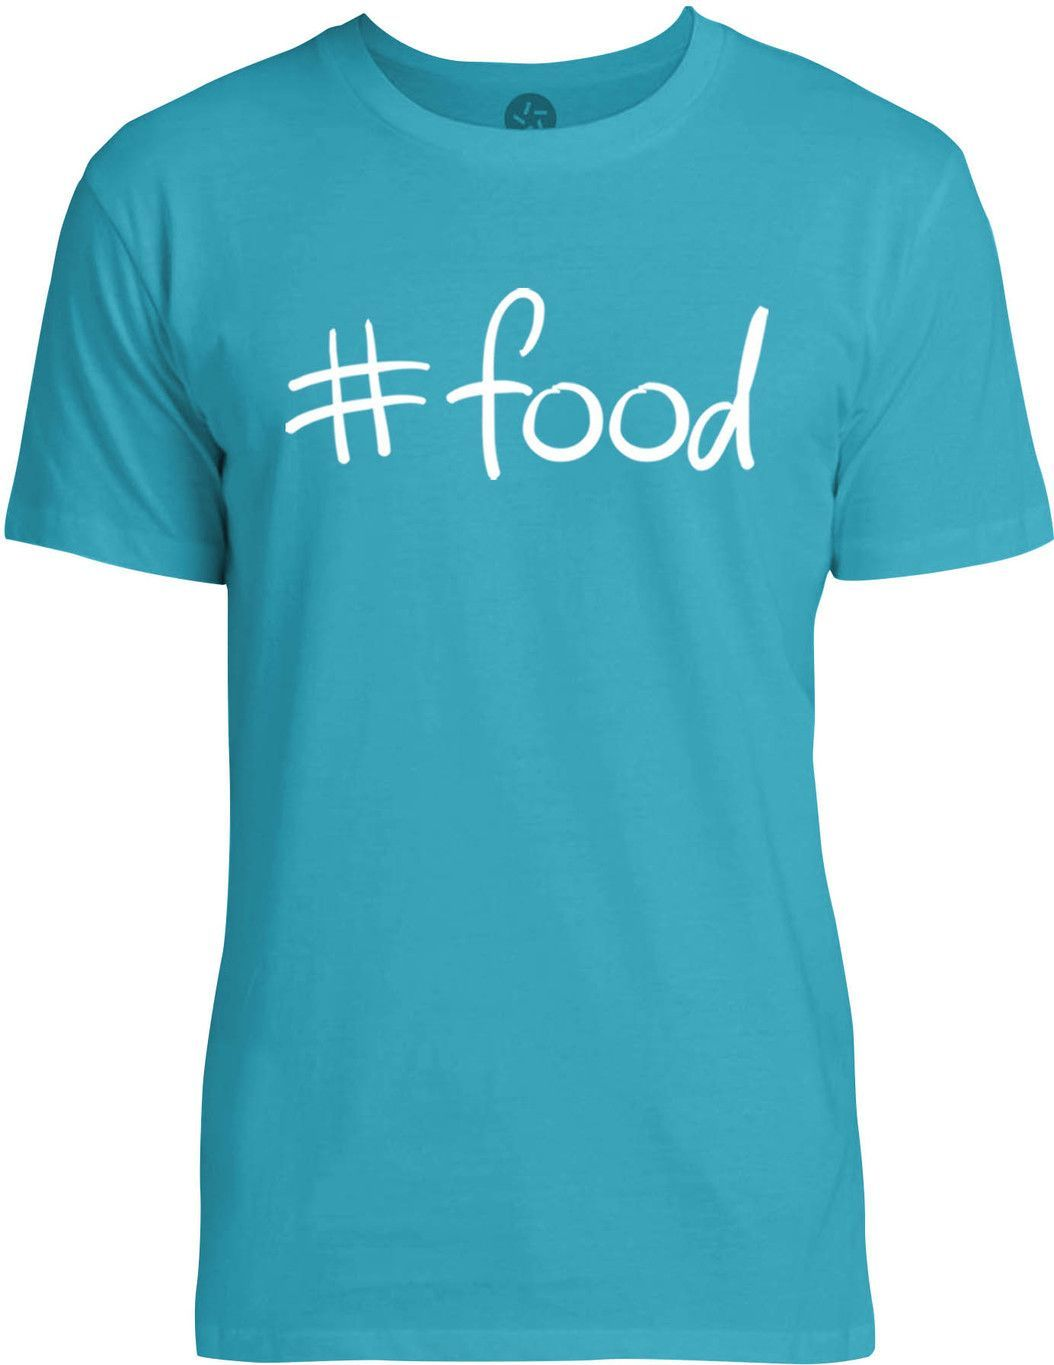 Hastag Food (White) Mens Fine Jersey T-Shirt